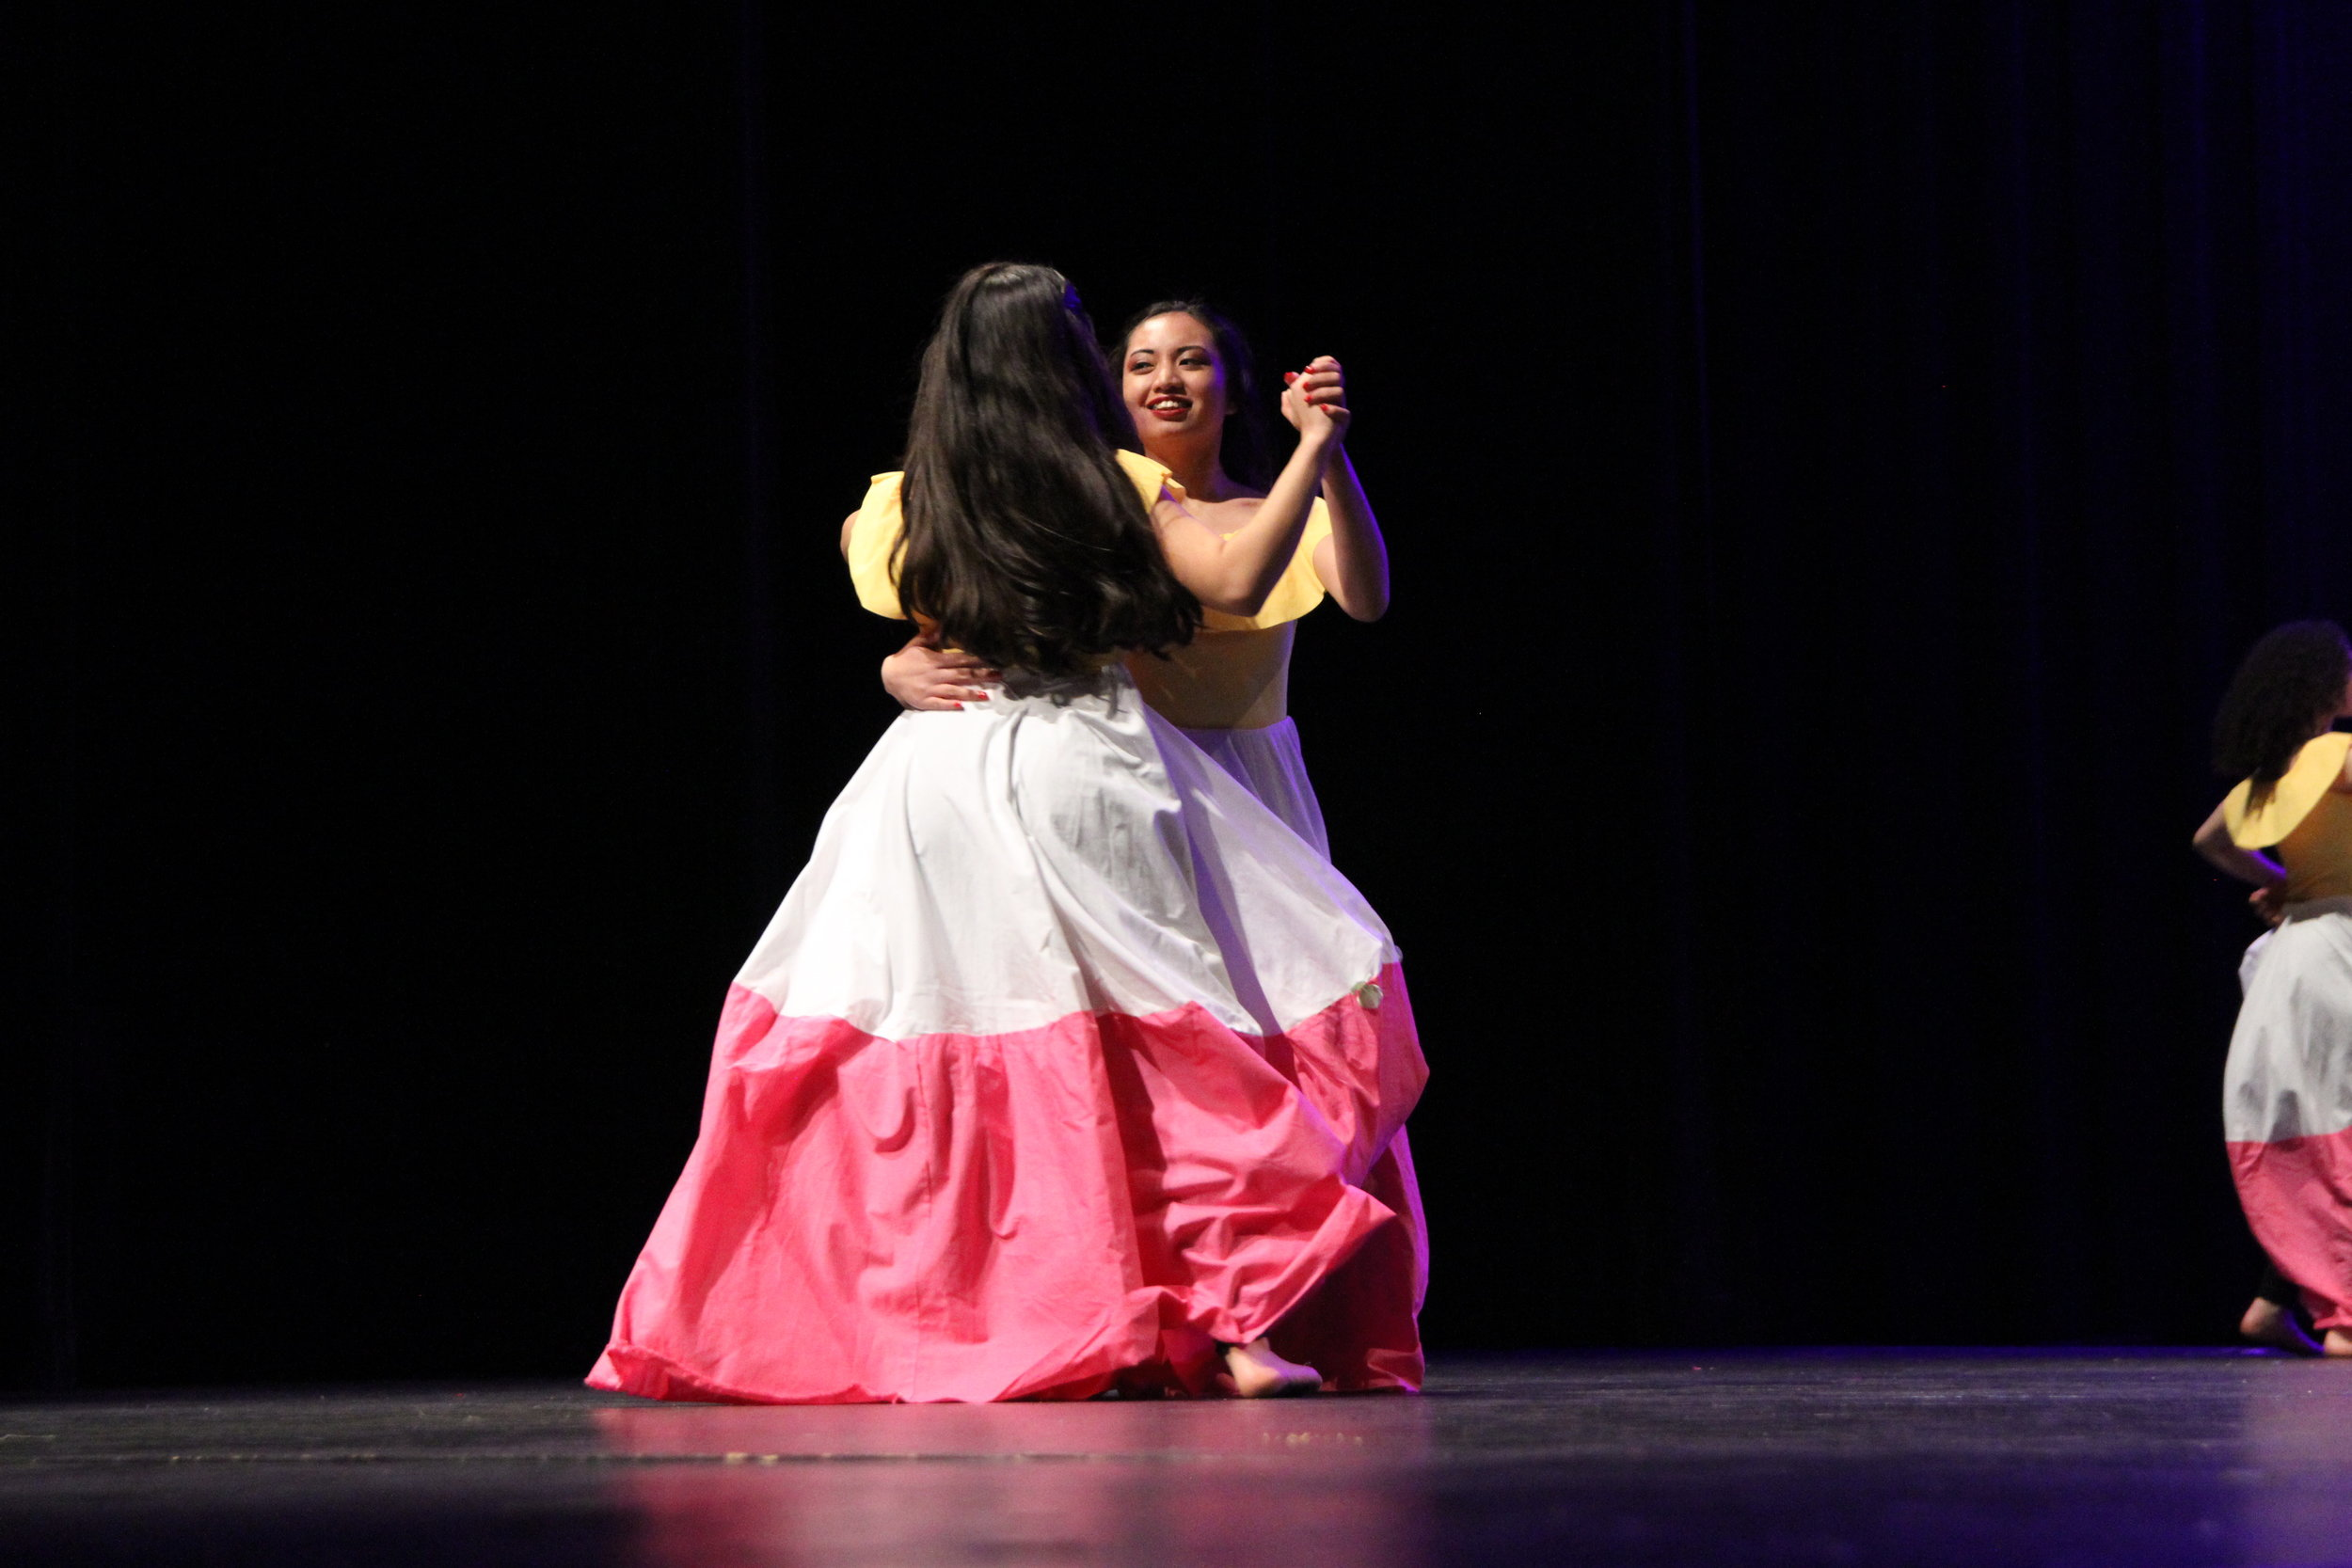 Two women of Jamaican Dance dance together as their flowing two-tone skirts follow behind them